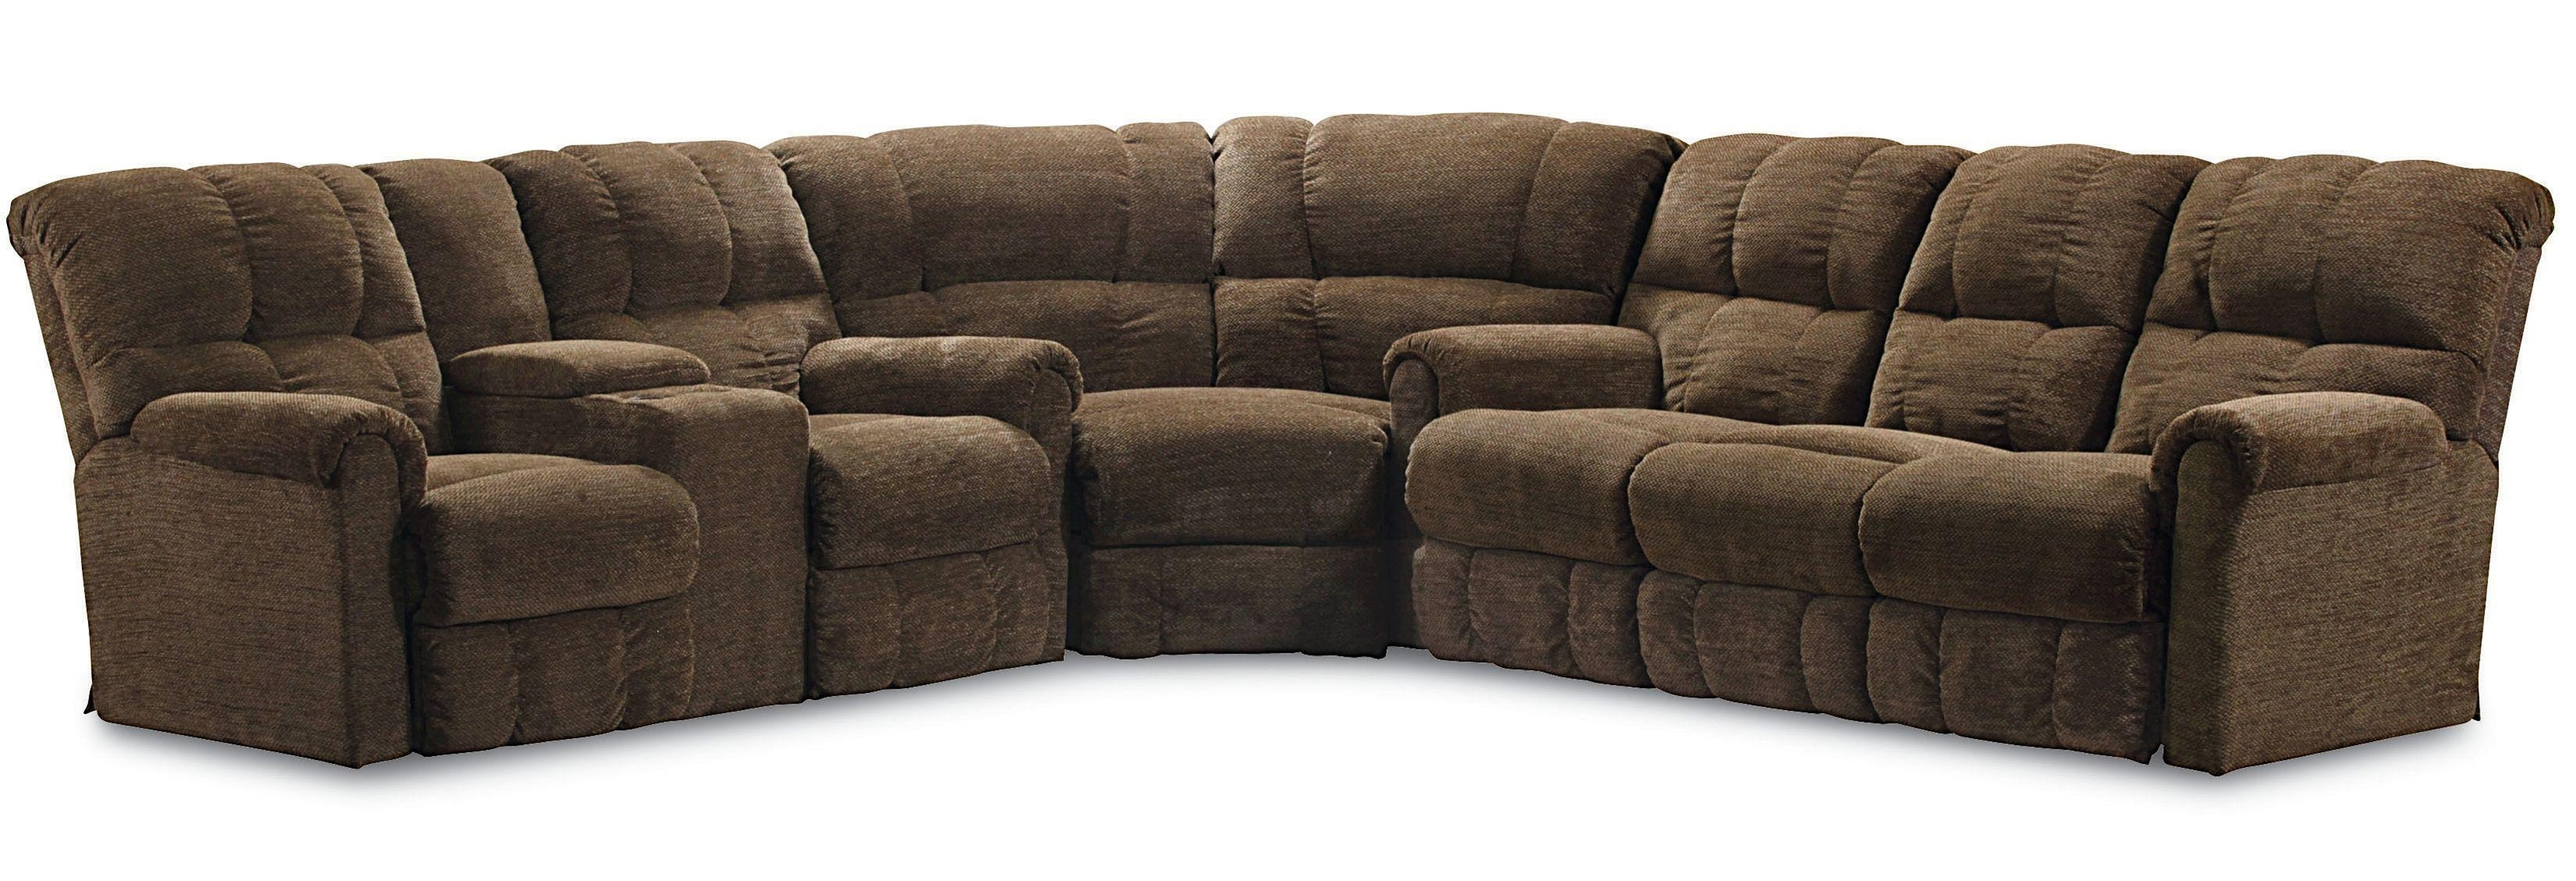 Lane Griffin Casual Three Piece Reclining Sectional Sofa With Four With Sectional Sofas At Birmingham Al (View 5 of 15)